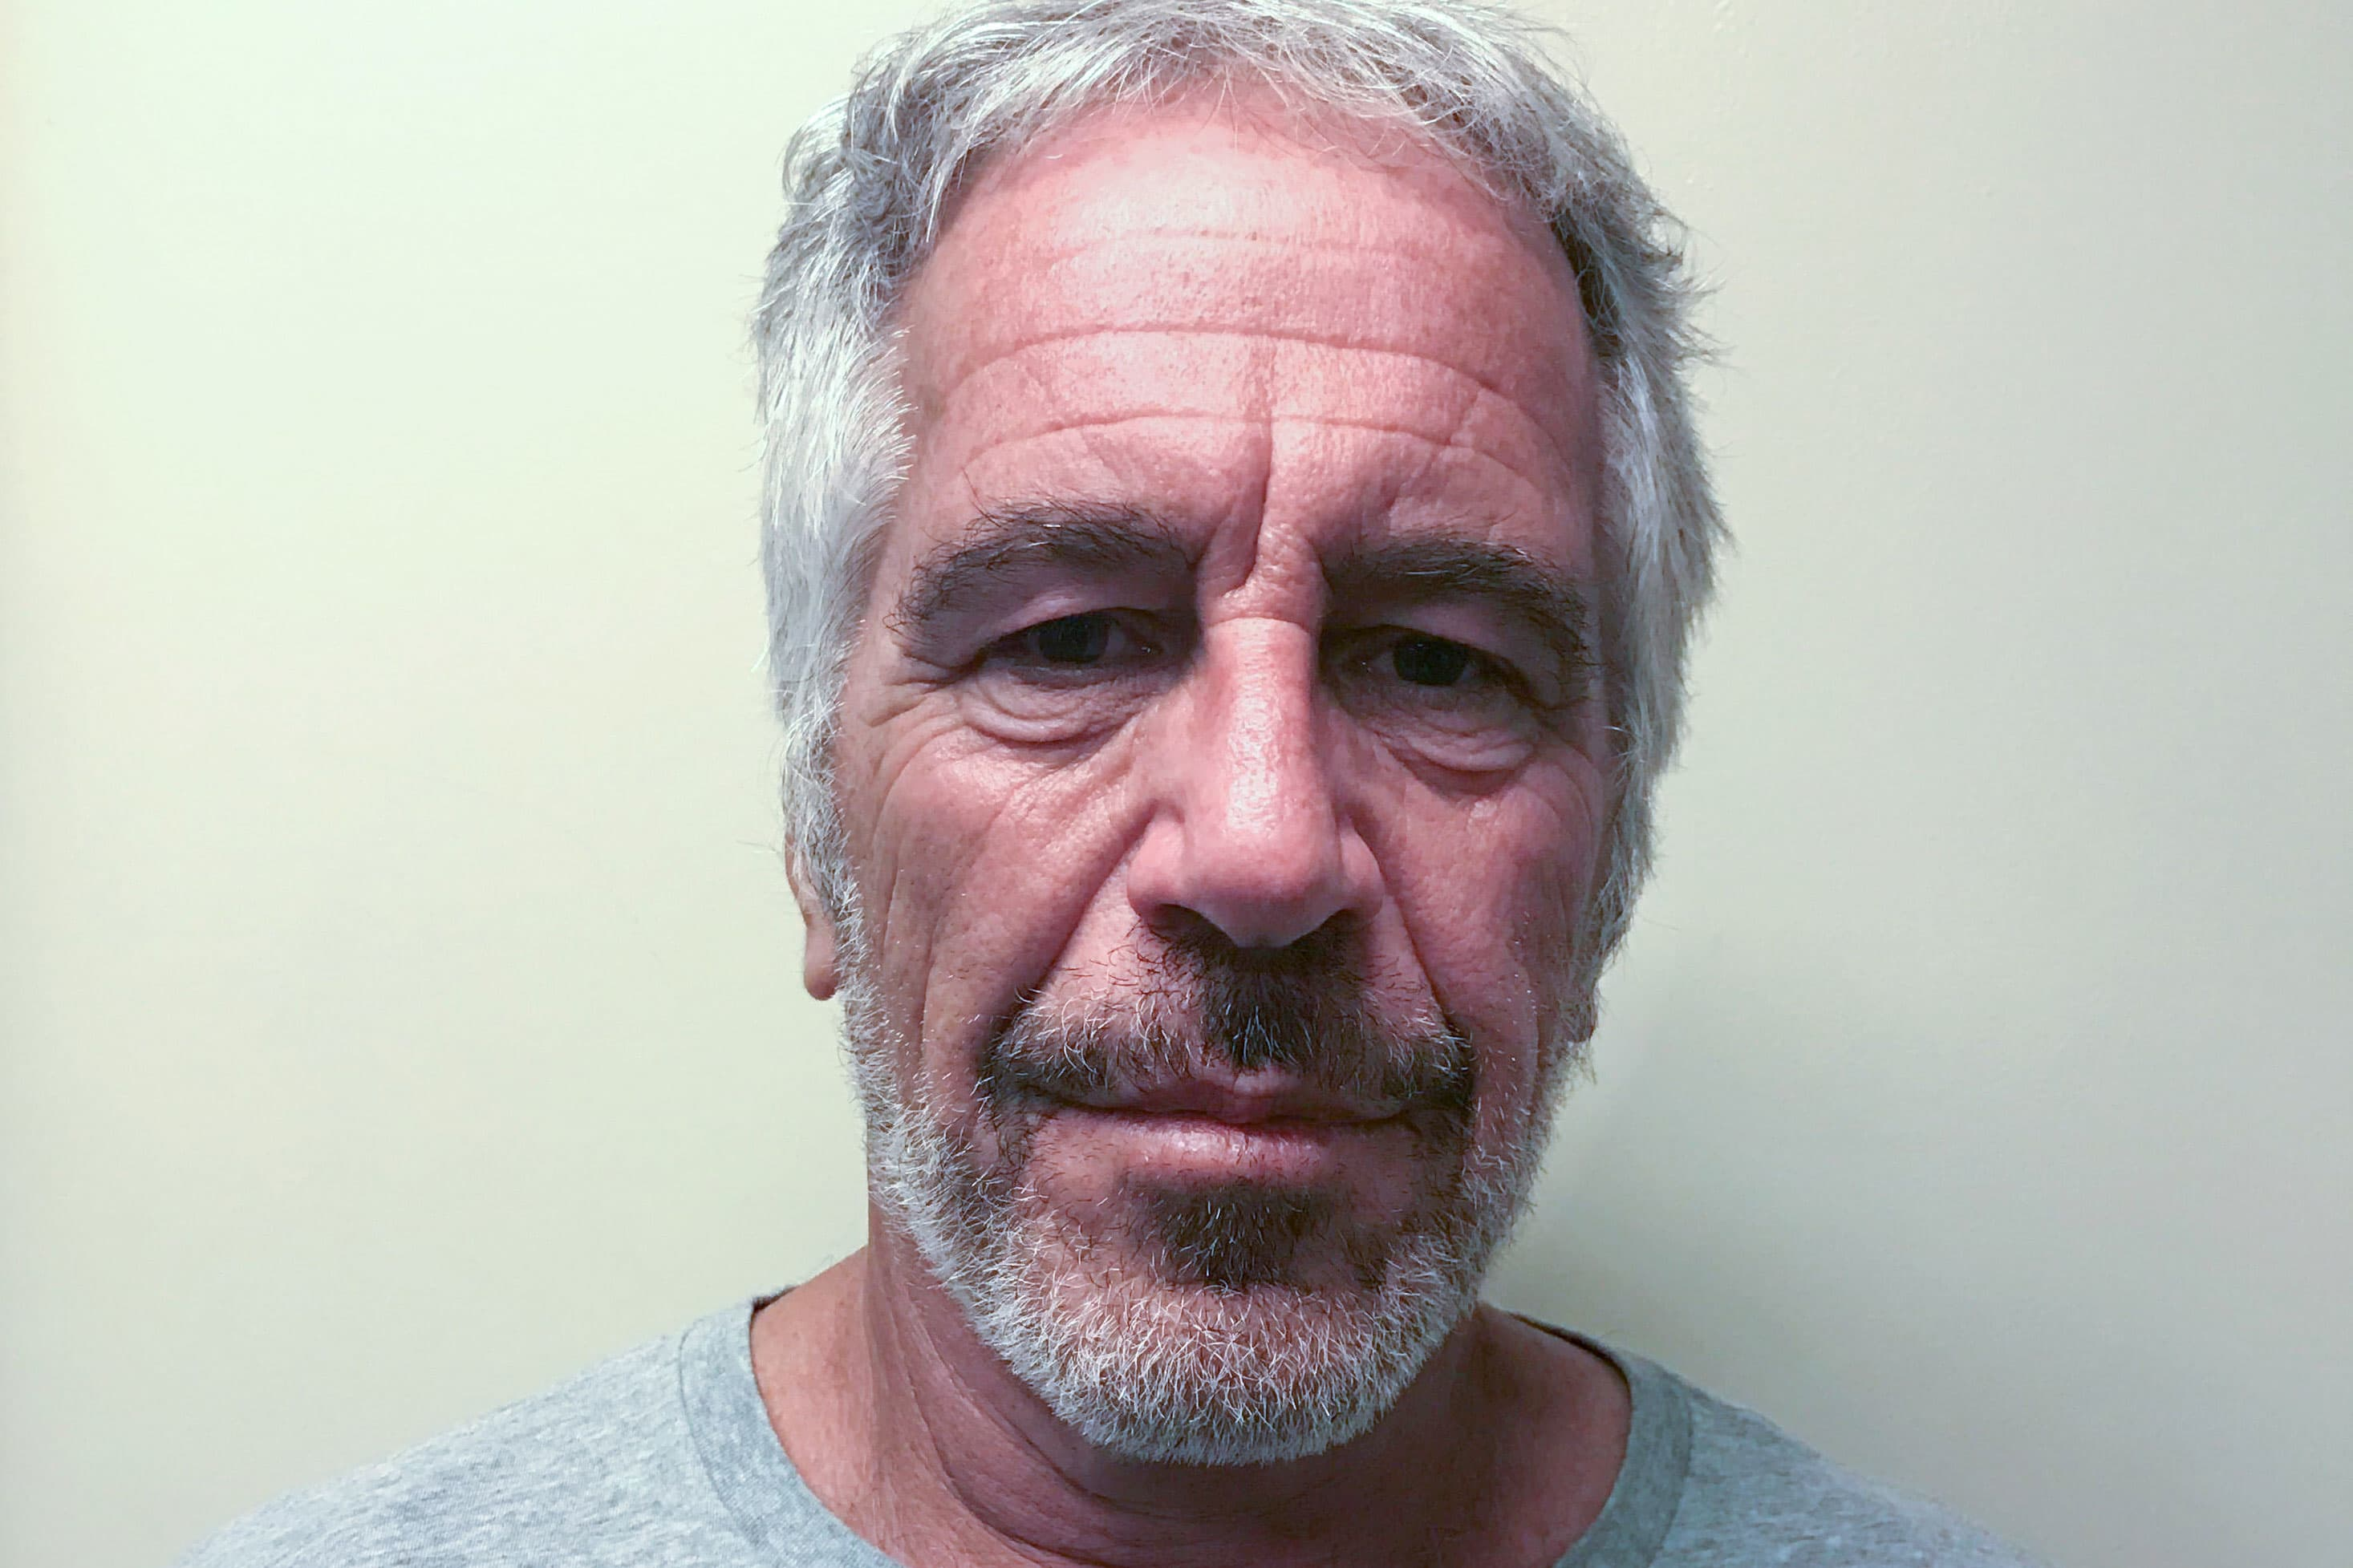 Jail video of Jeffrey Epstein's first suicide attempt was deleted, prosecutors reveal